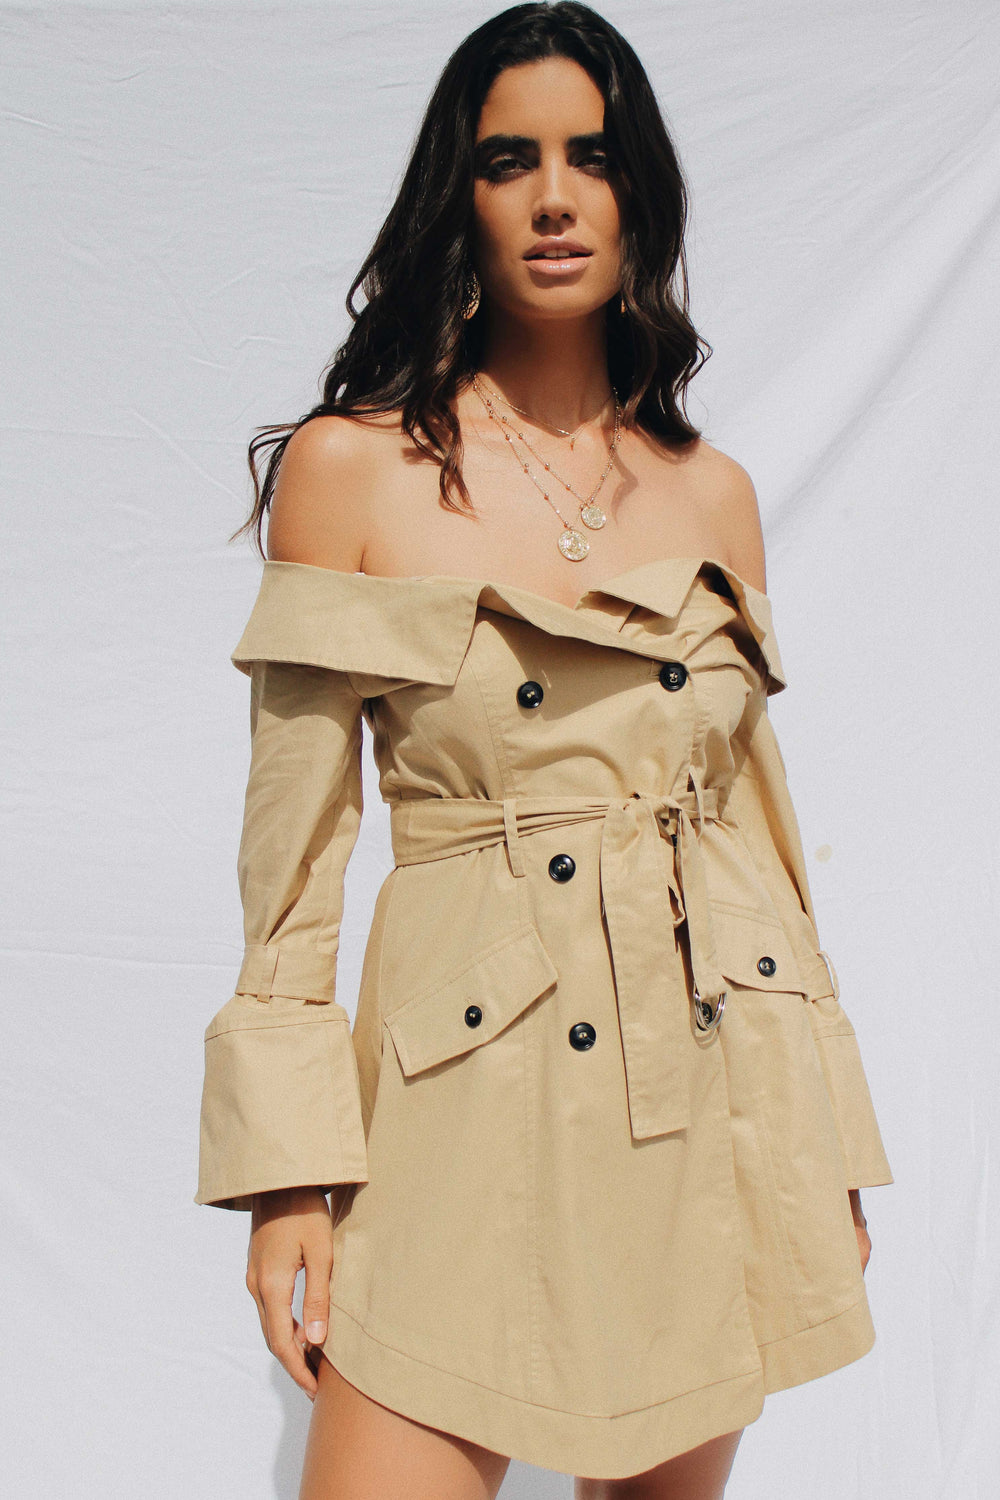 KIARA TRENCH COAT | Women's Online Shopping | CHICLEFRIQUE